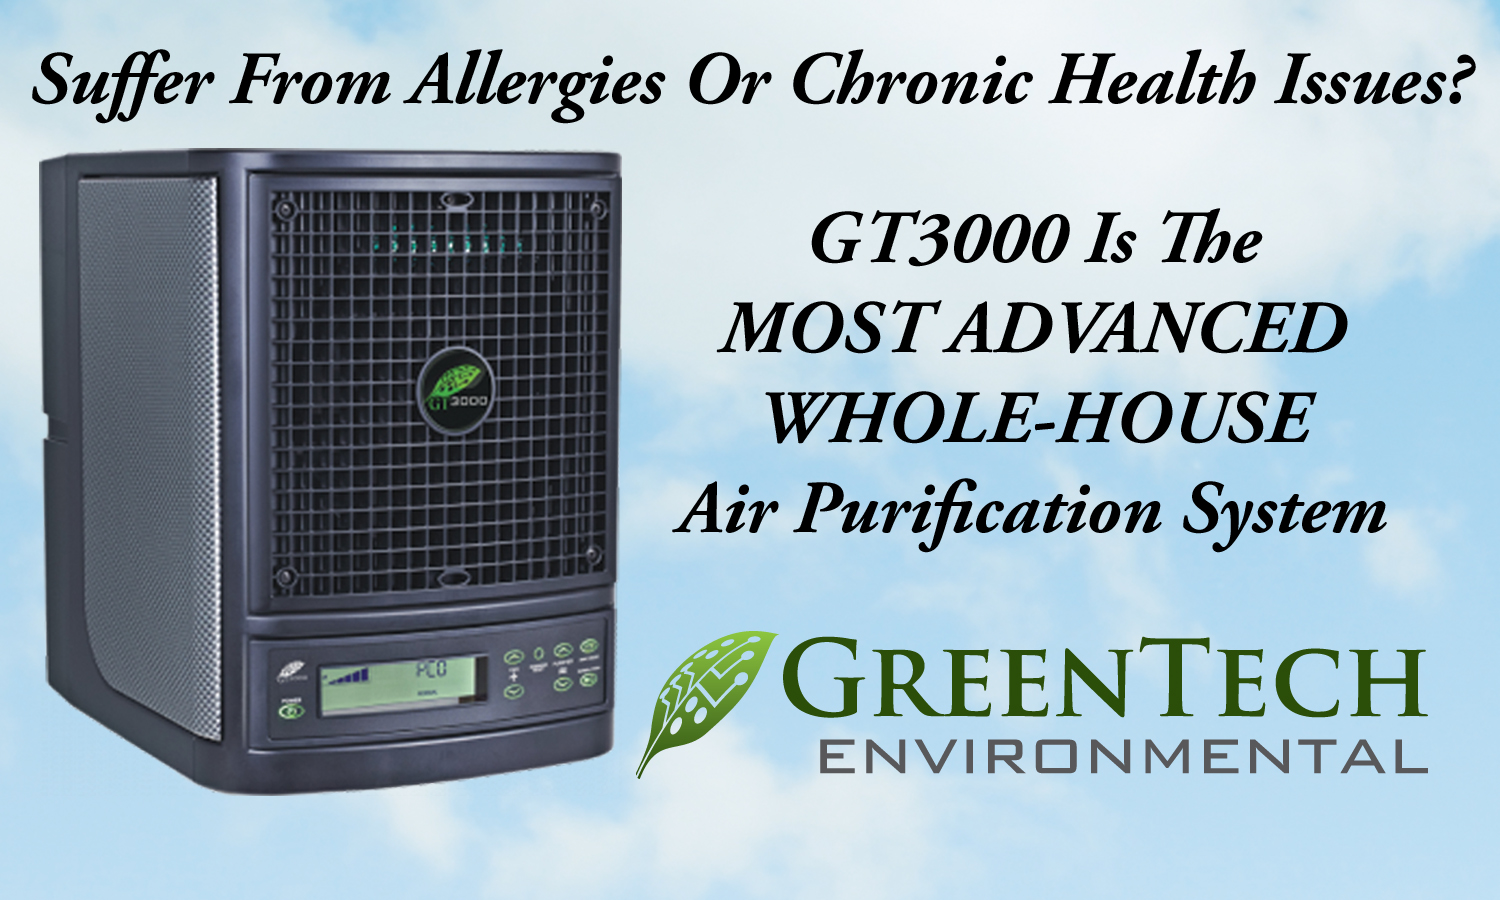 Air Purity That Goes Beyond Traditional Air Filtering Methods! Click For More Information And To Purchase